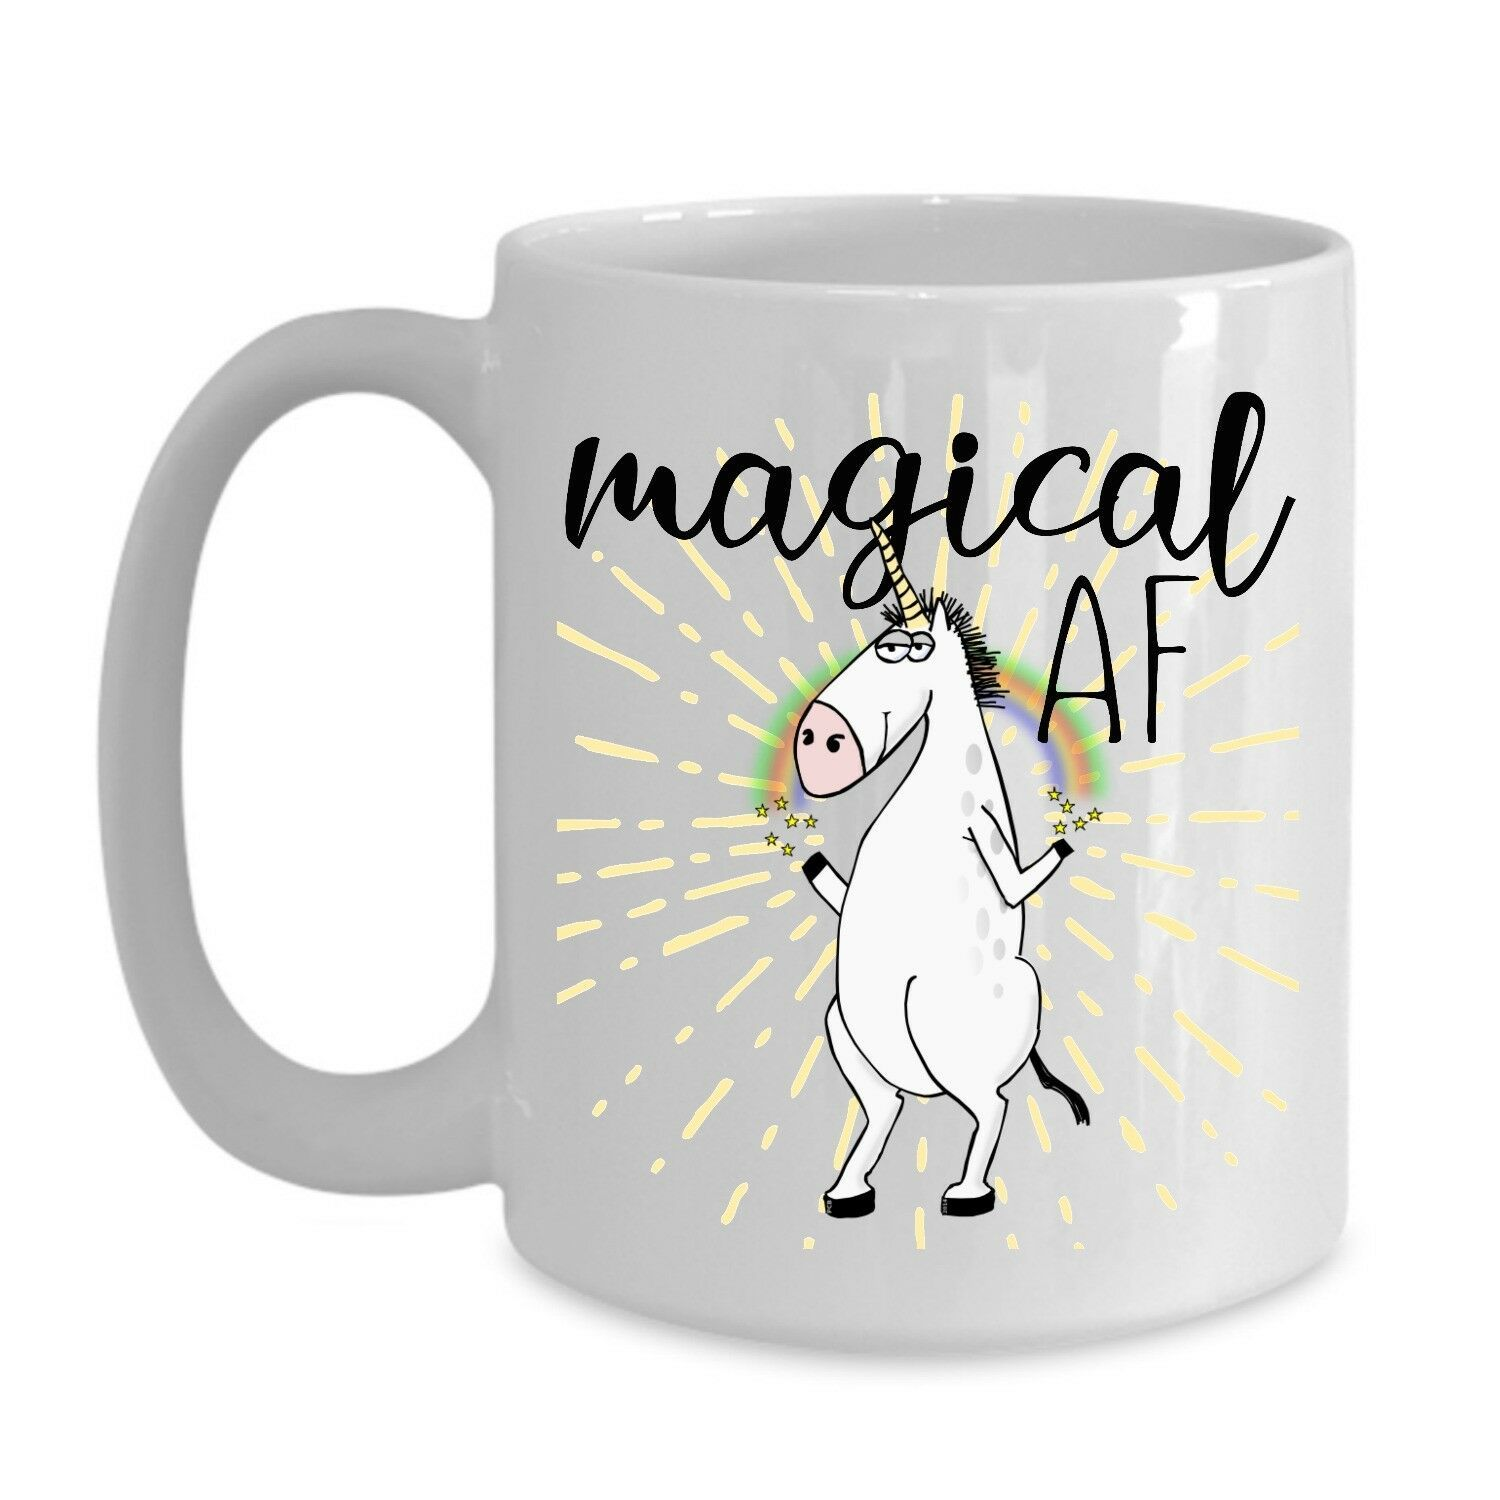 Magical AF Mug Unicorn Funny Rude Gift for Her Mom Coworker Coffee Cup Ceramic